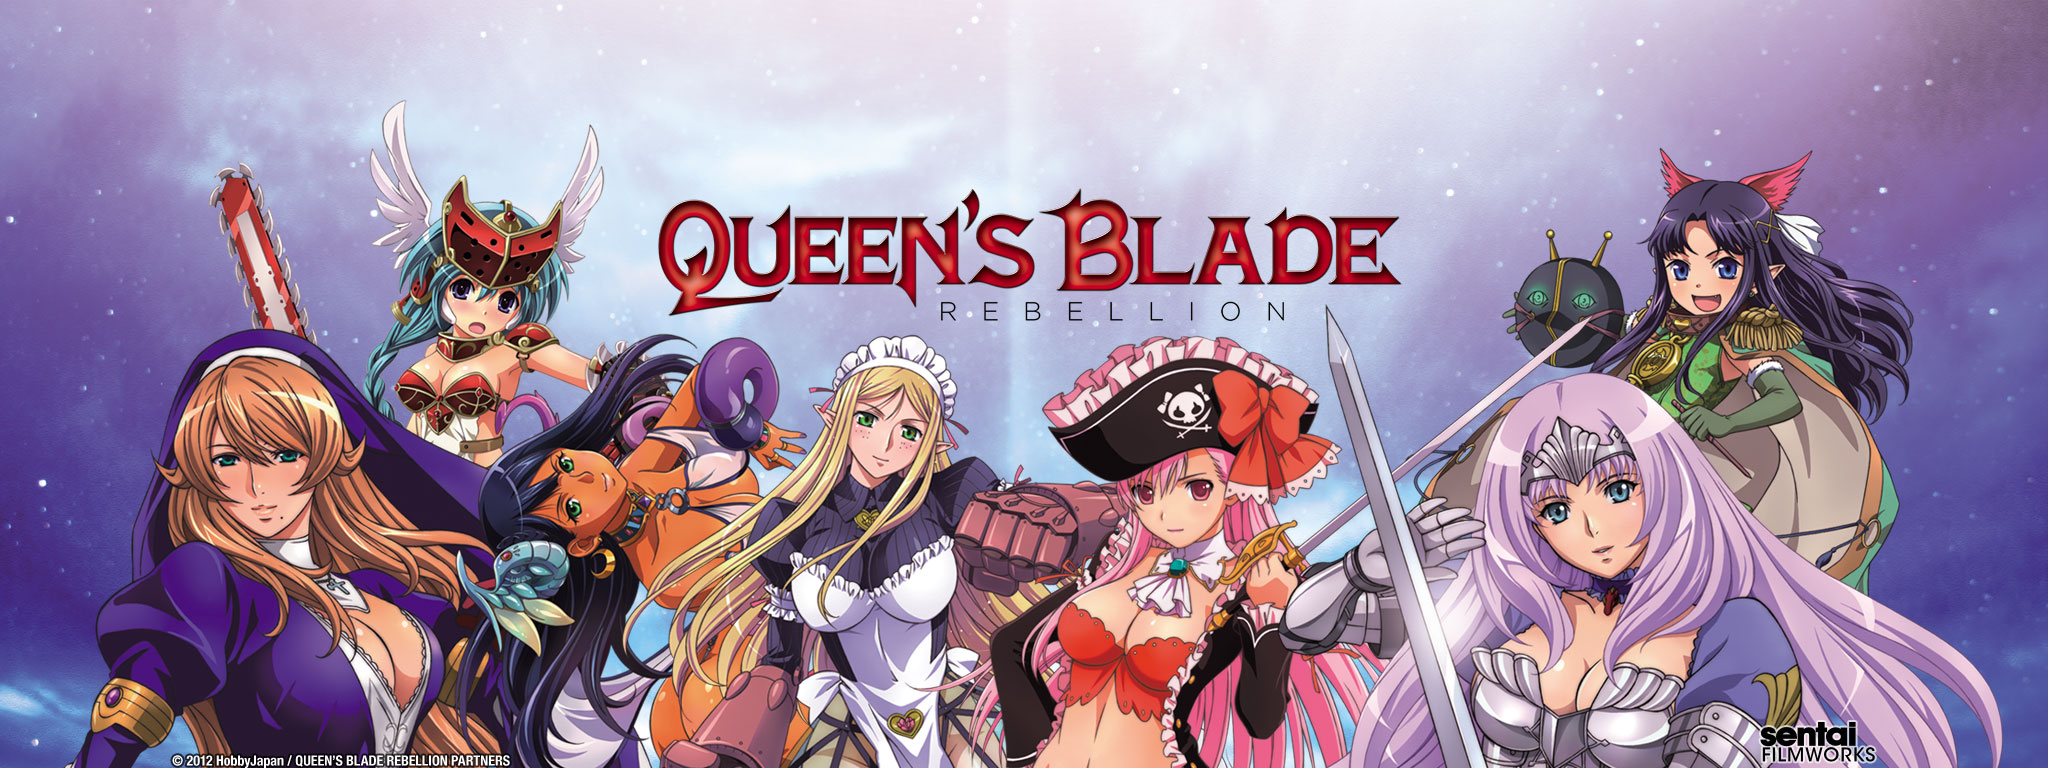 Queen's Blade Rebellion